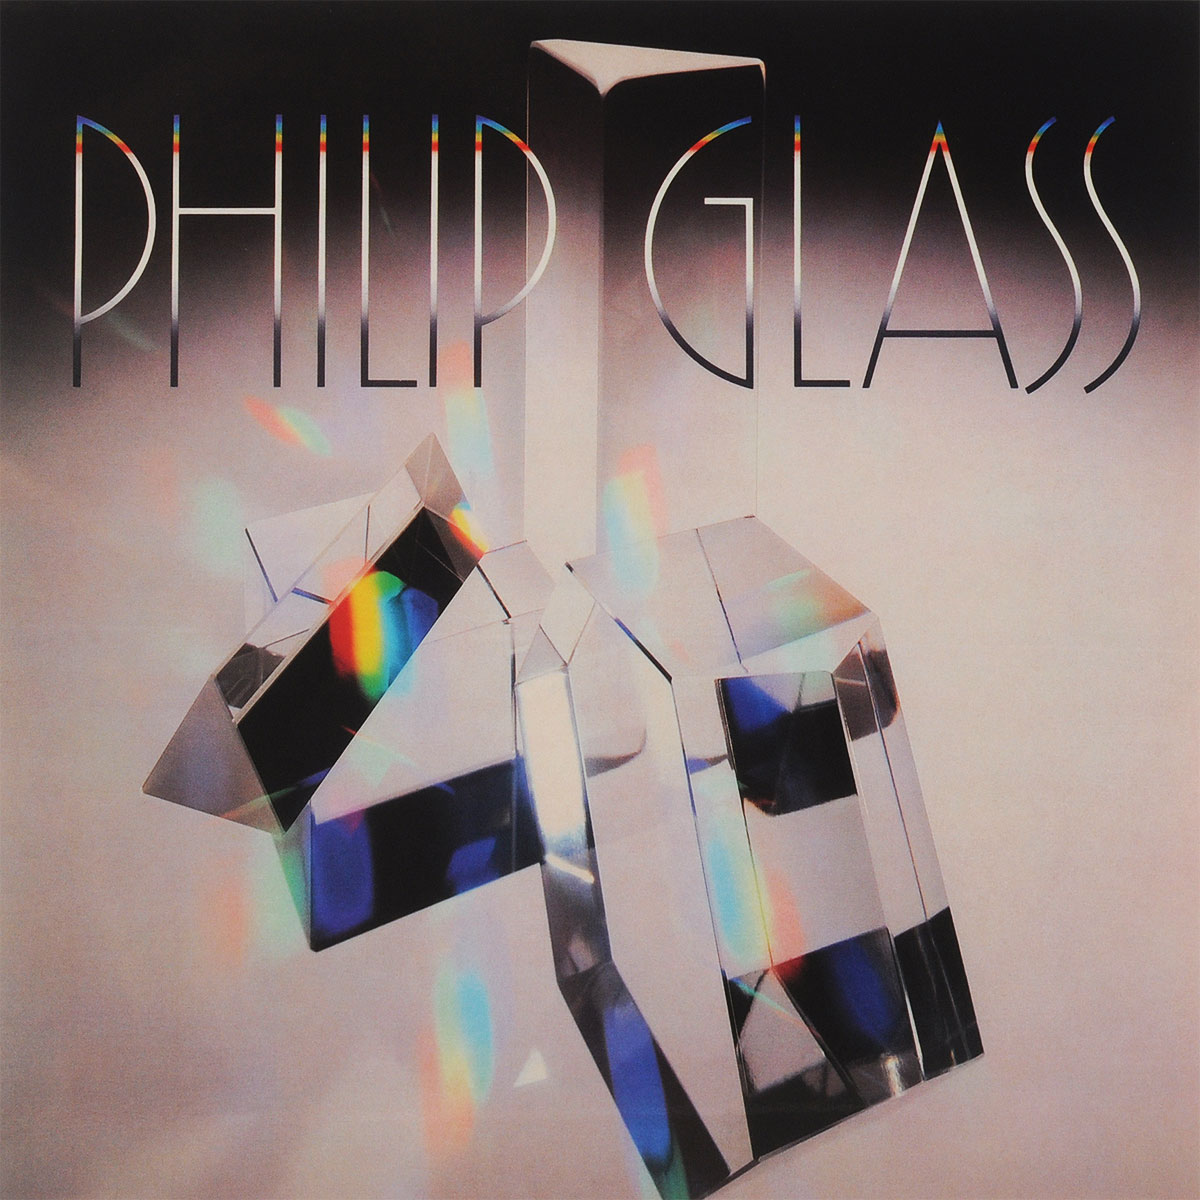 лучшая цена The Philip Glass Ensemble Philip Glass. Glassworks (LP)